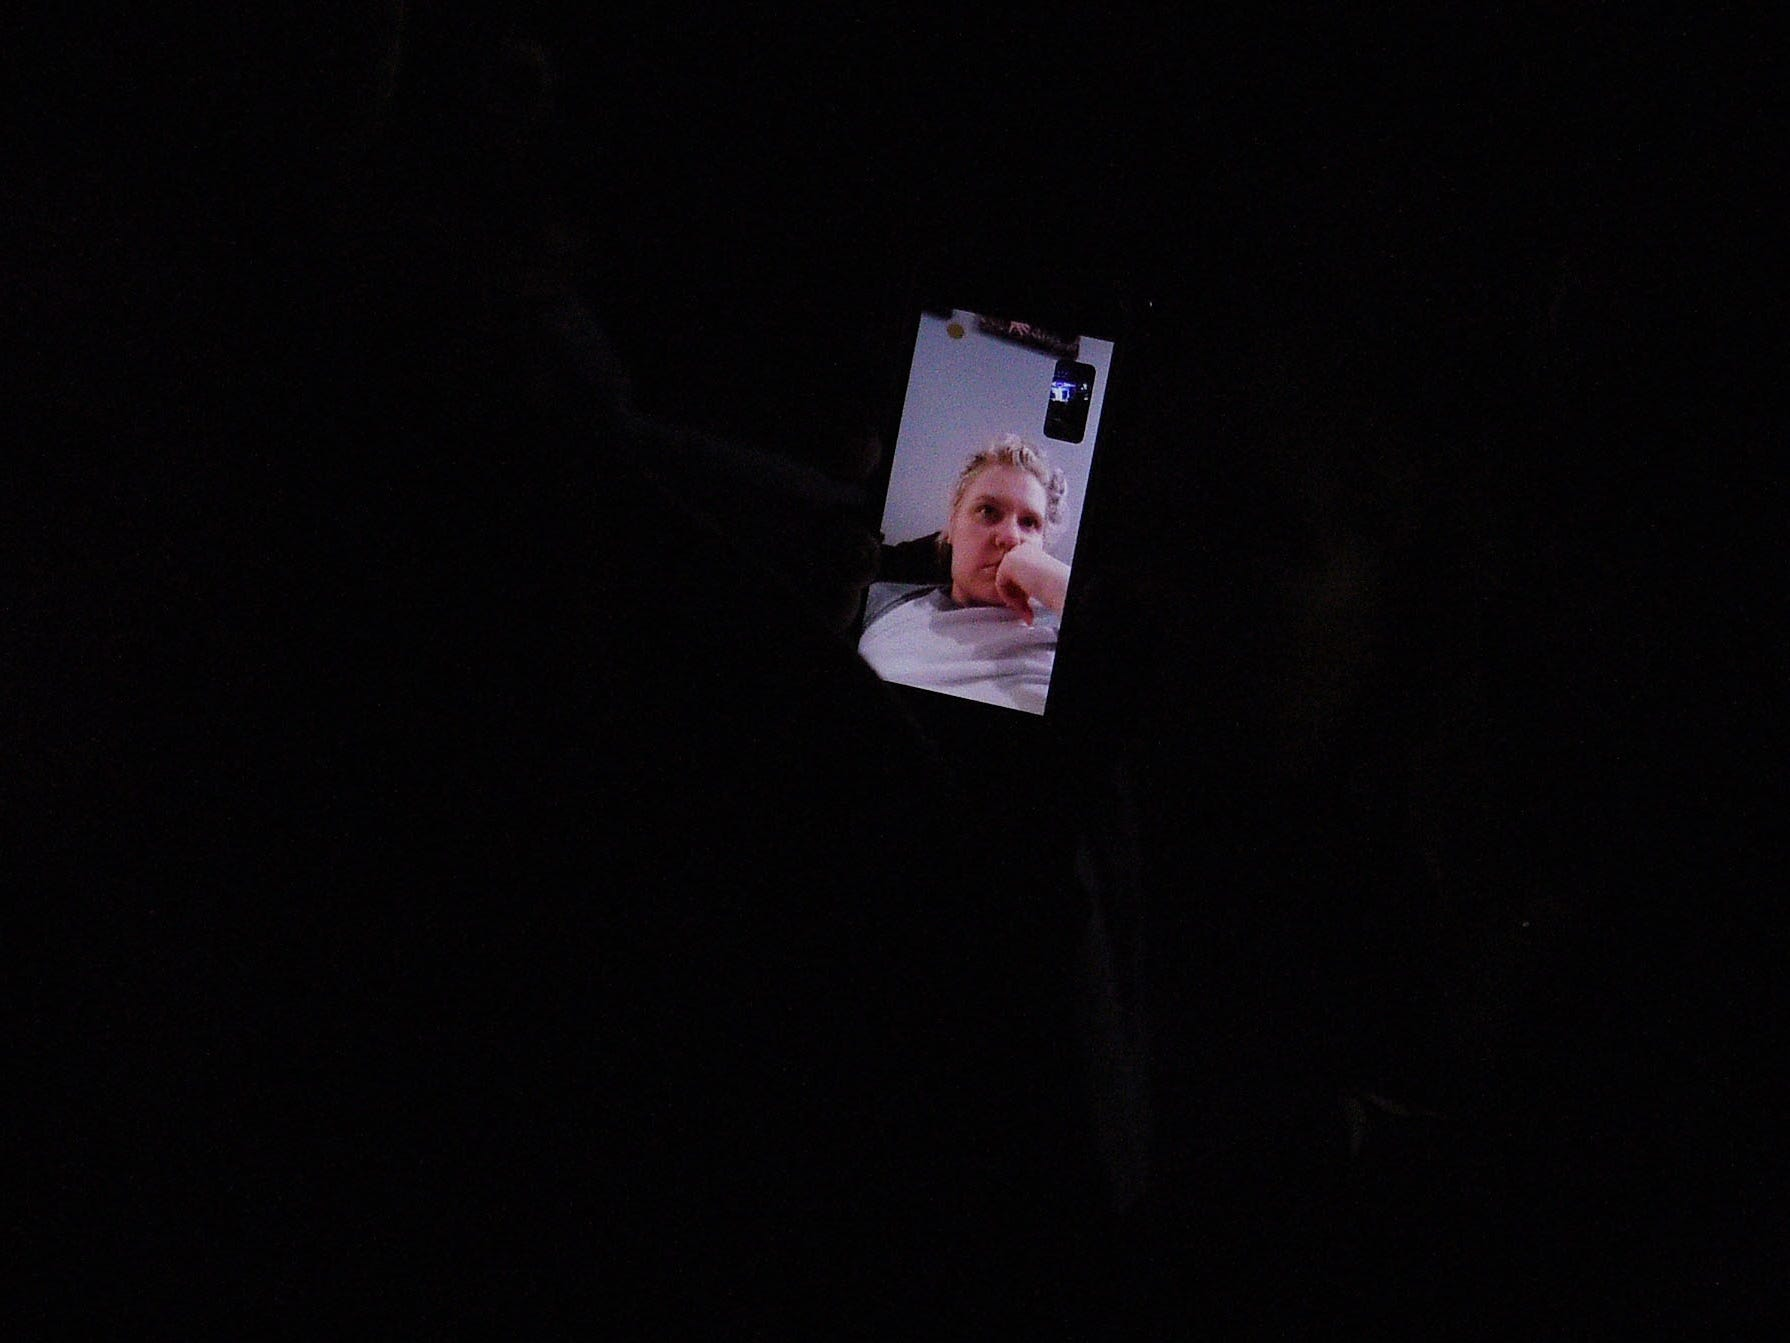 A Fleetwood Mac fan watches the concert via FaceTime during the show at the Denny Sanford Premier Center Saturday, Feb. 2, in Sioux Falls. The new lineup included Mick Fleetwood, John McVie, Stevie Nicks, Christine McVie, Mike Campbell and Neil Finn.